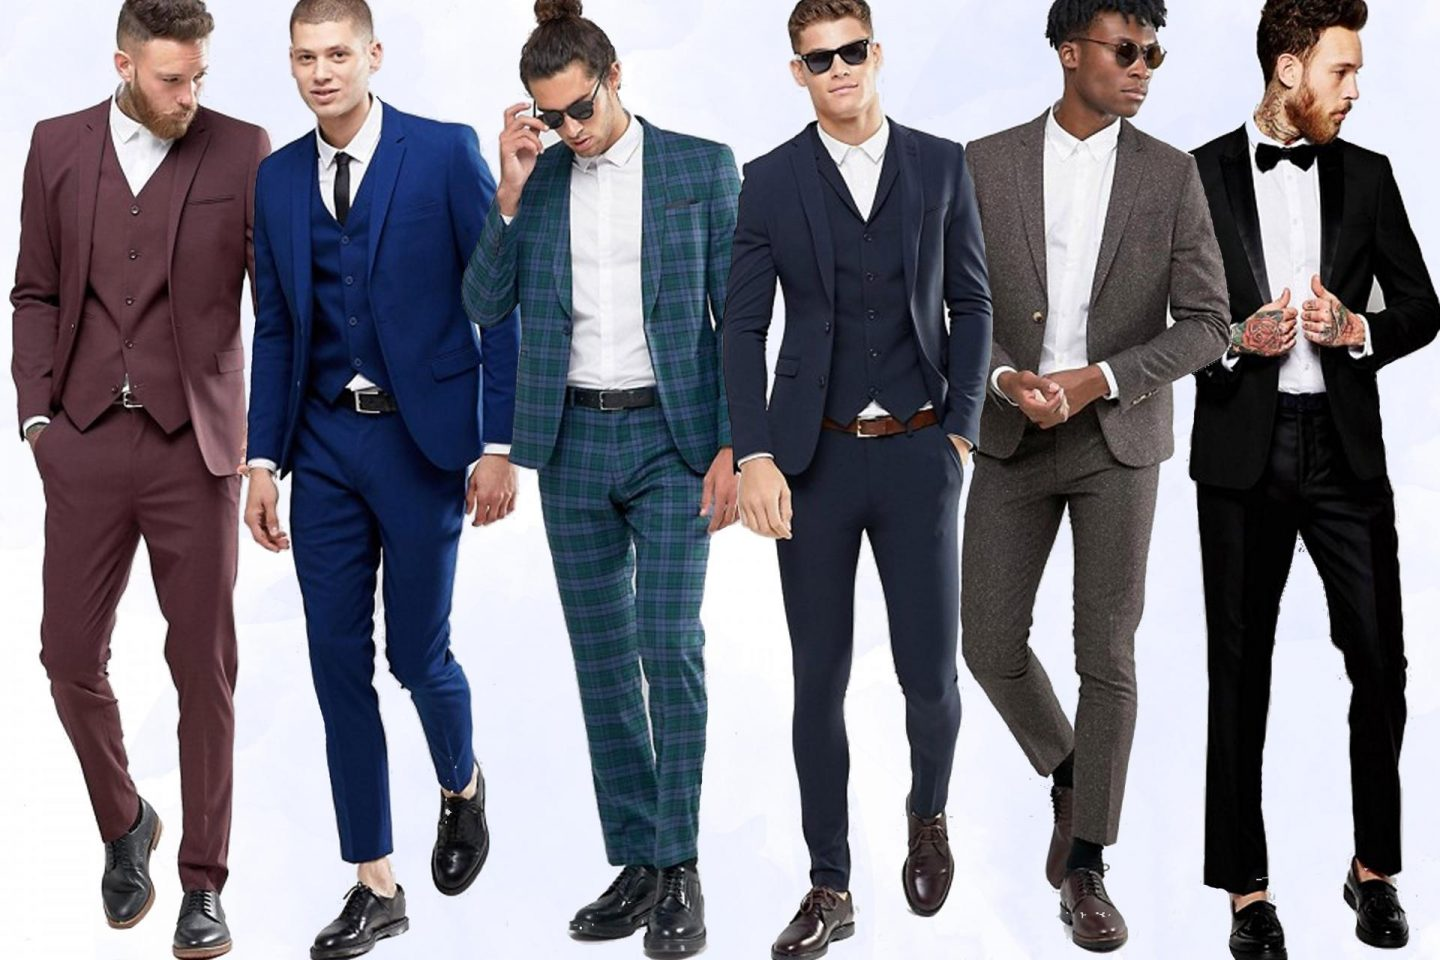 menswear-investing-in-the-right-suit-rachel-nicole-uk-fashion-blogger